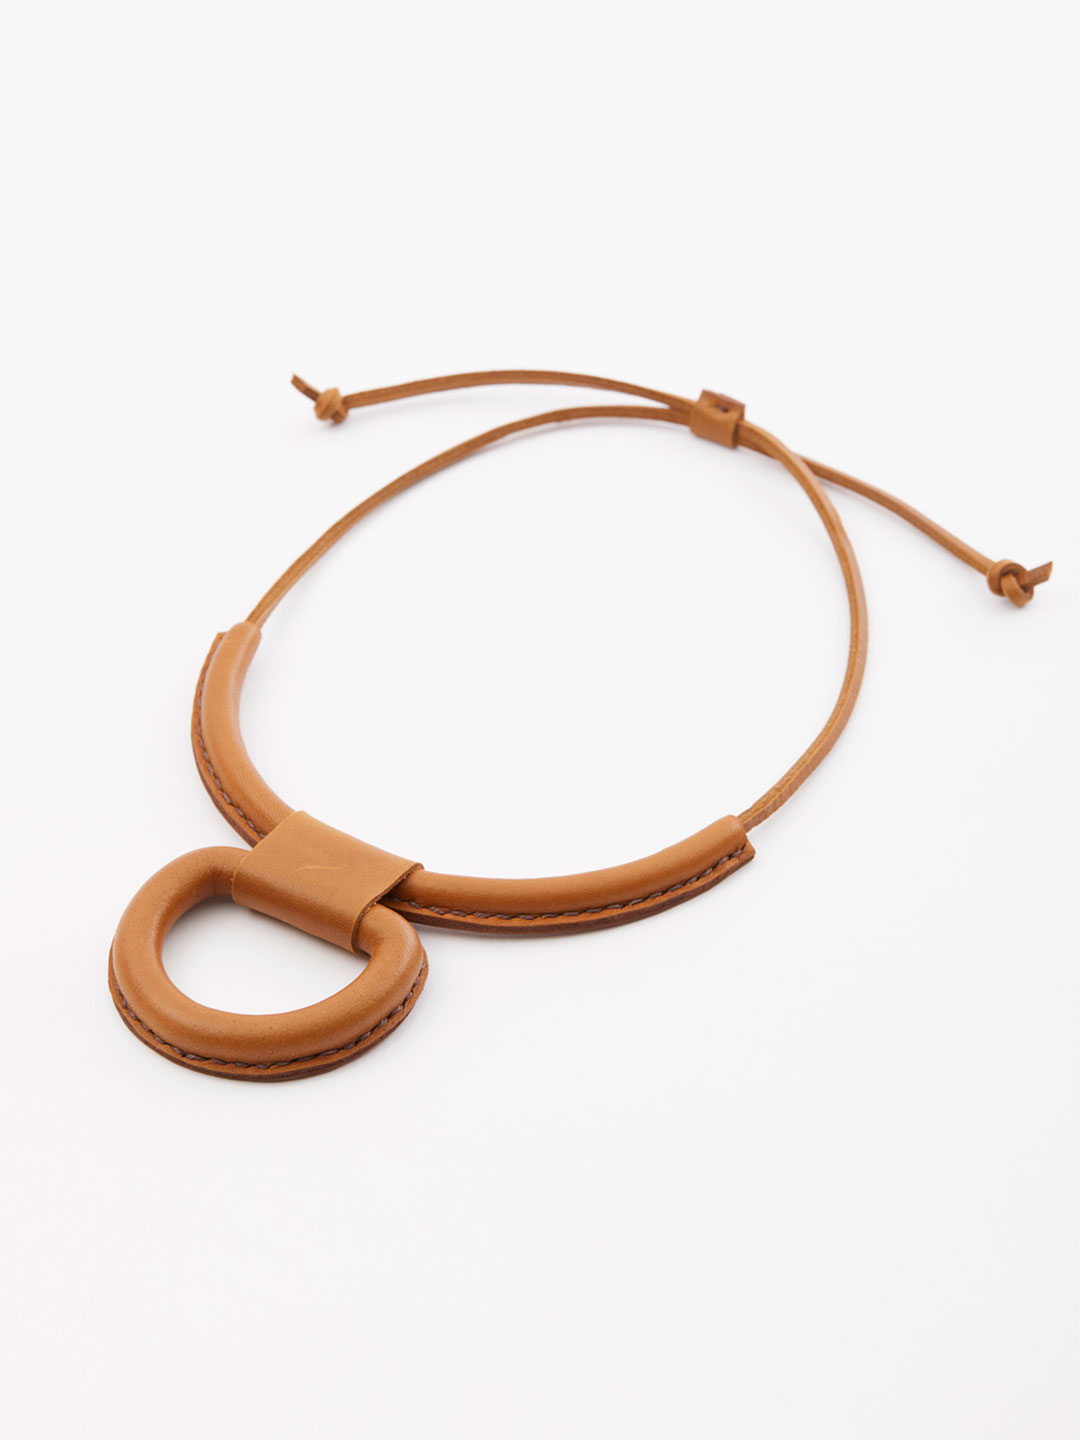 Union Necklace - Saddle Brown